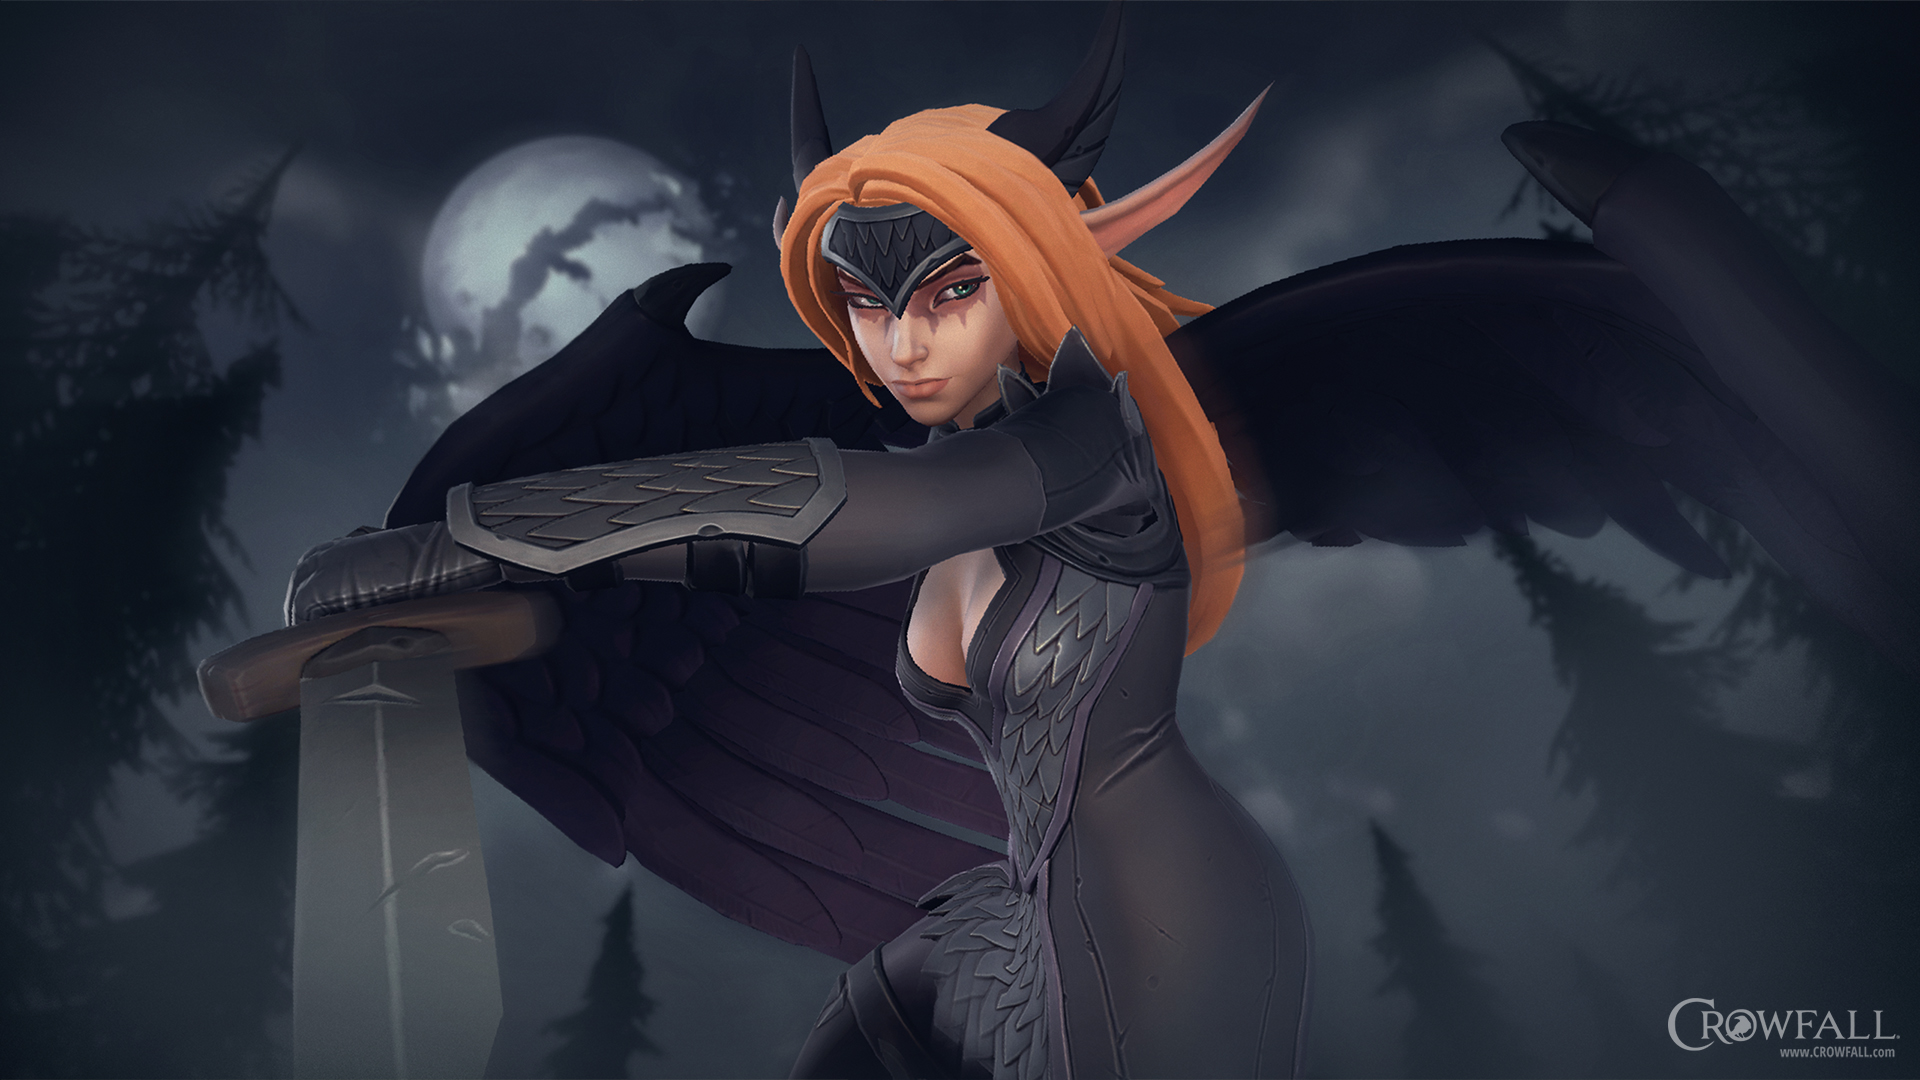 <T> Nightstalker - Crowfall wallpaper -1920x1080